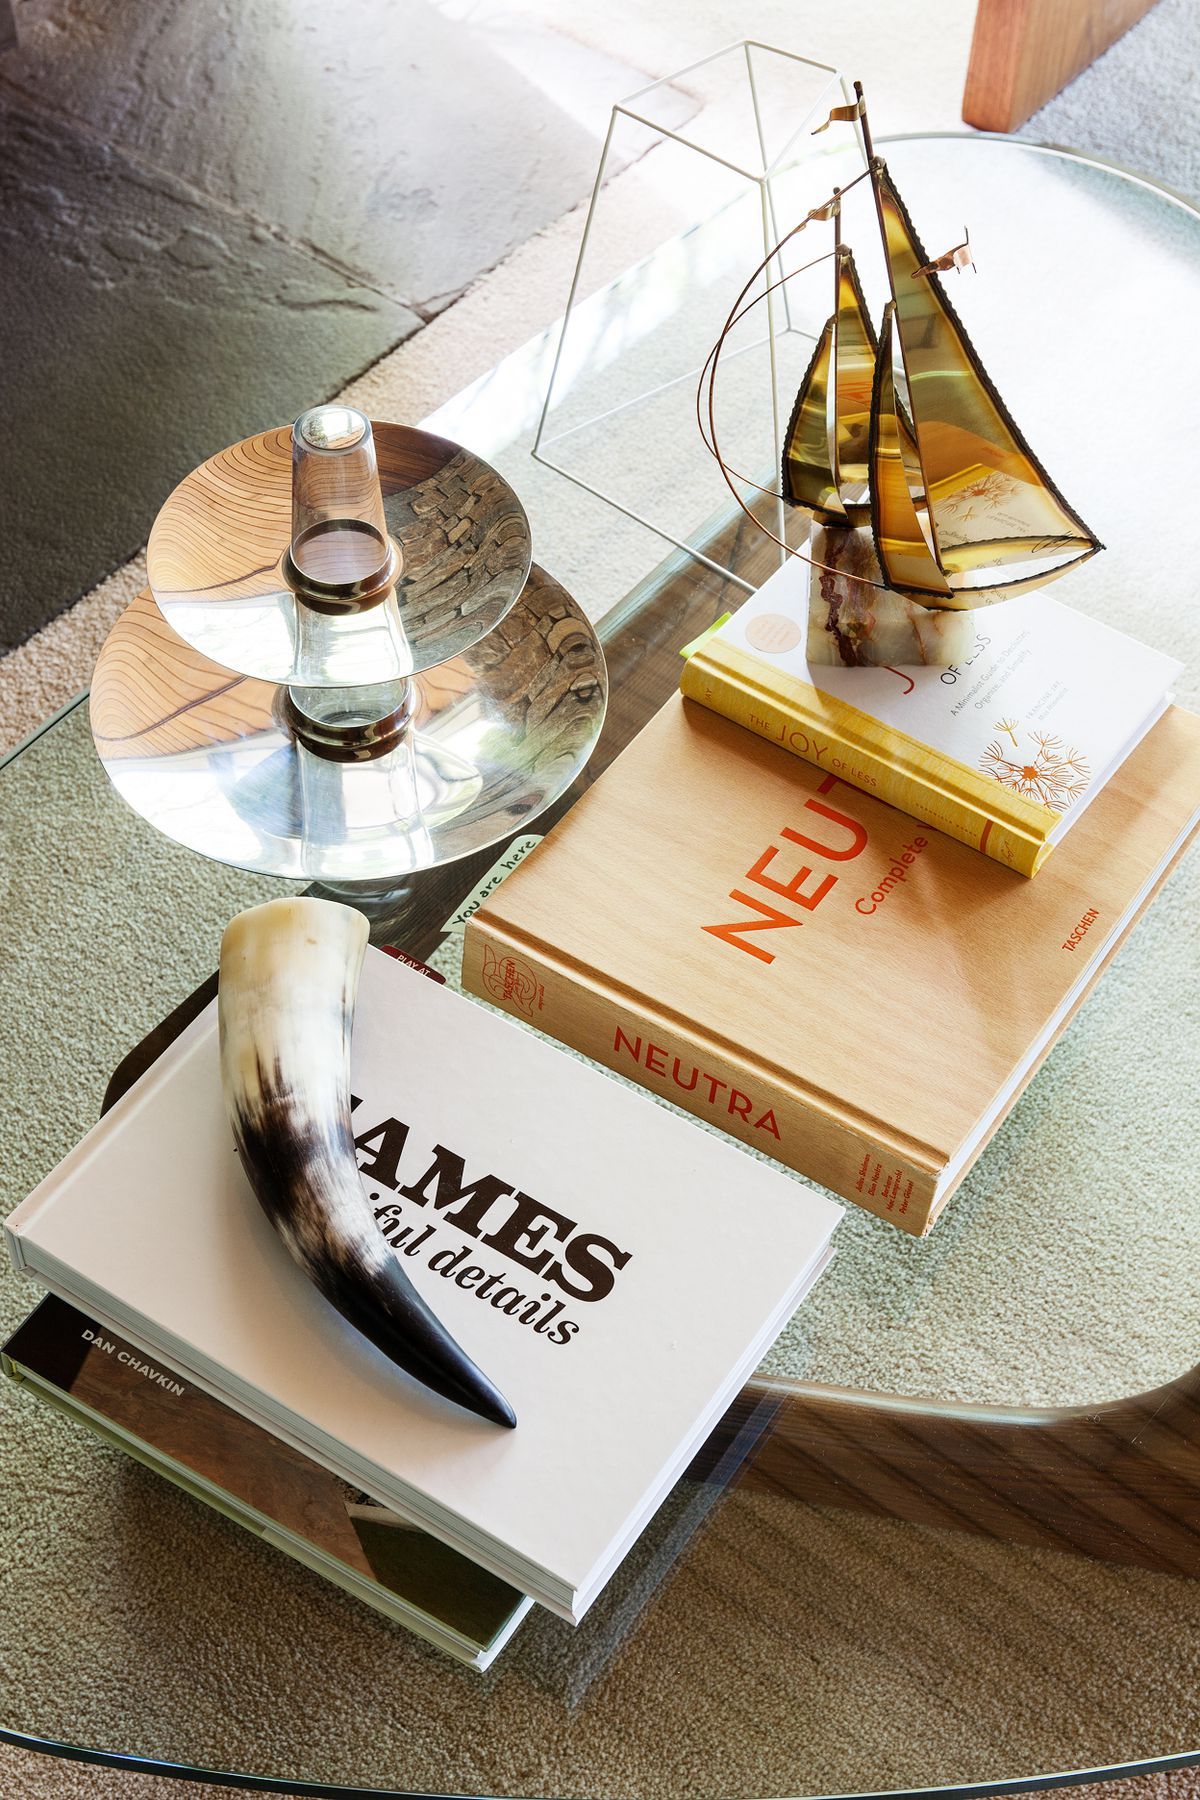 A coffee table vignette shows midcentury accessories, a metal boat and tiered tray, as well as books about Neutra and Eames.